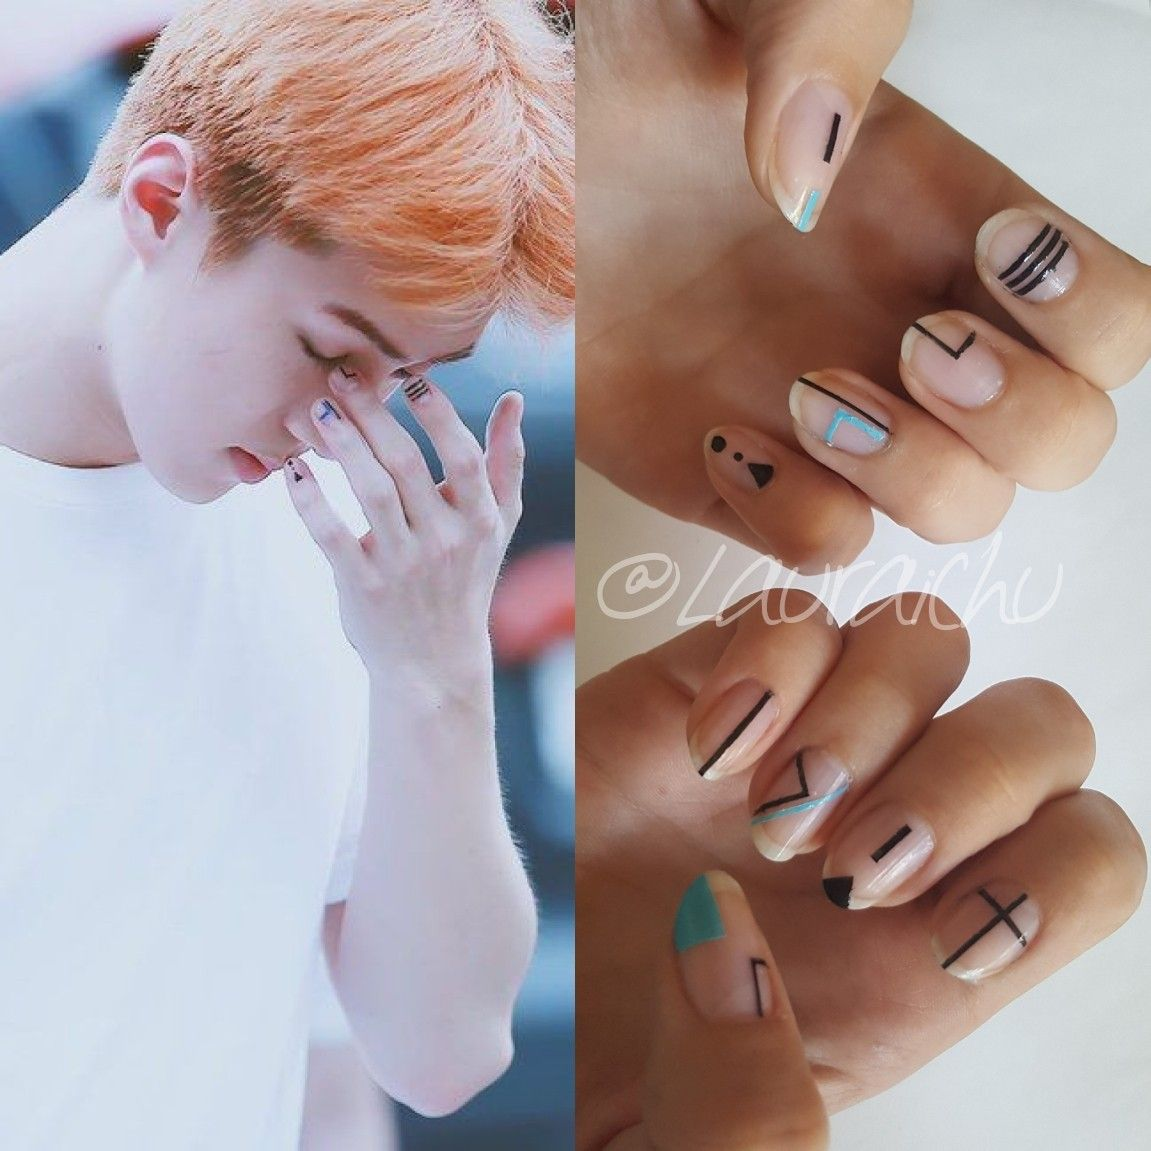 EXO Sehun Nails #EXO #Sehun #Nails #Nail #Nailart #Kpop | Nails ...